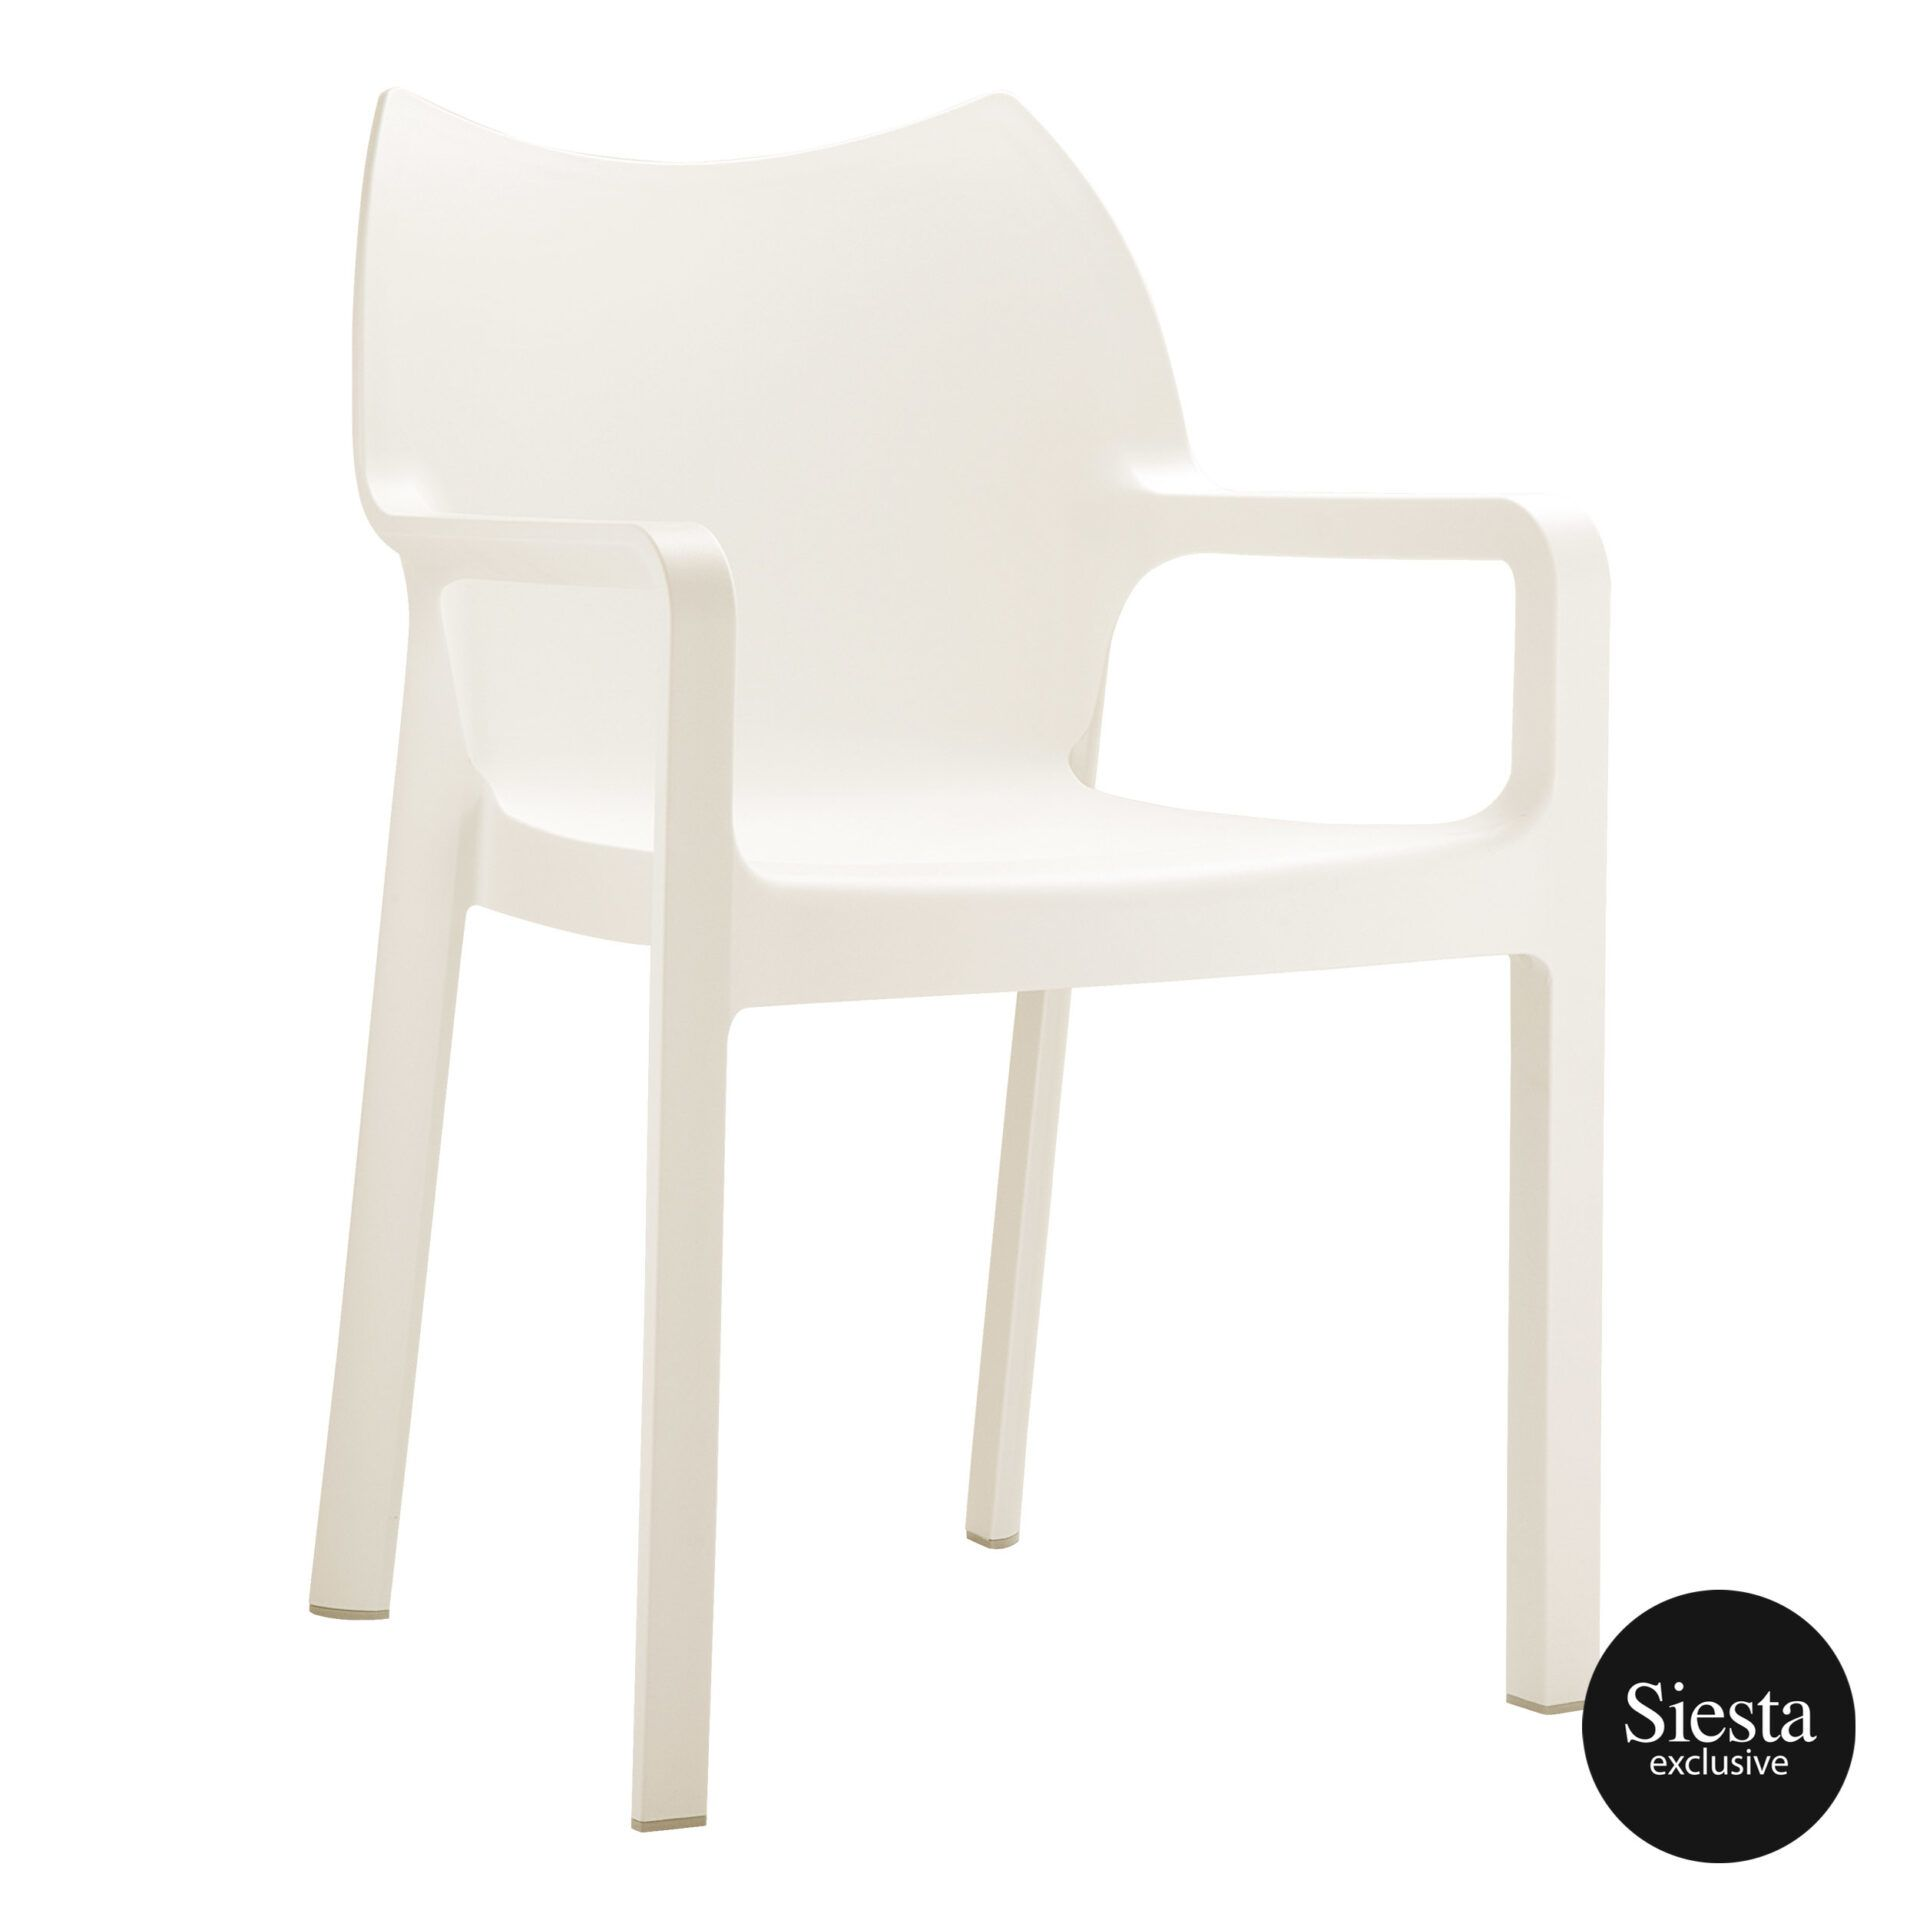 outdoor plastic seating diva chair beige front side 1